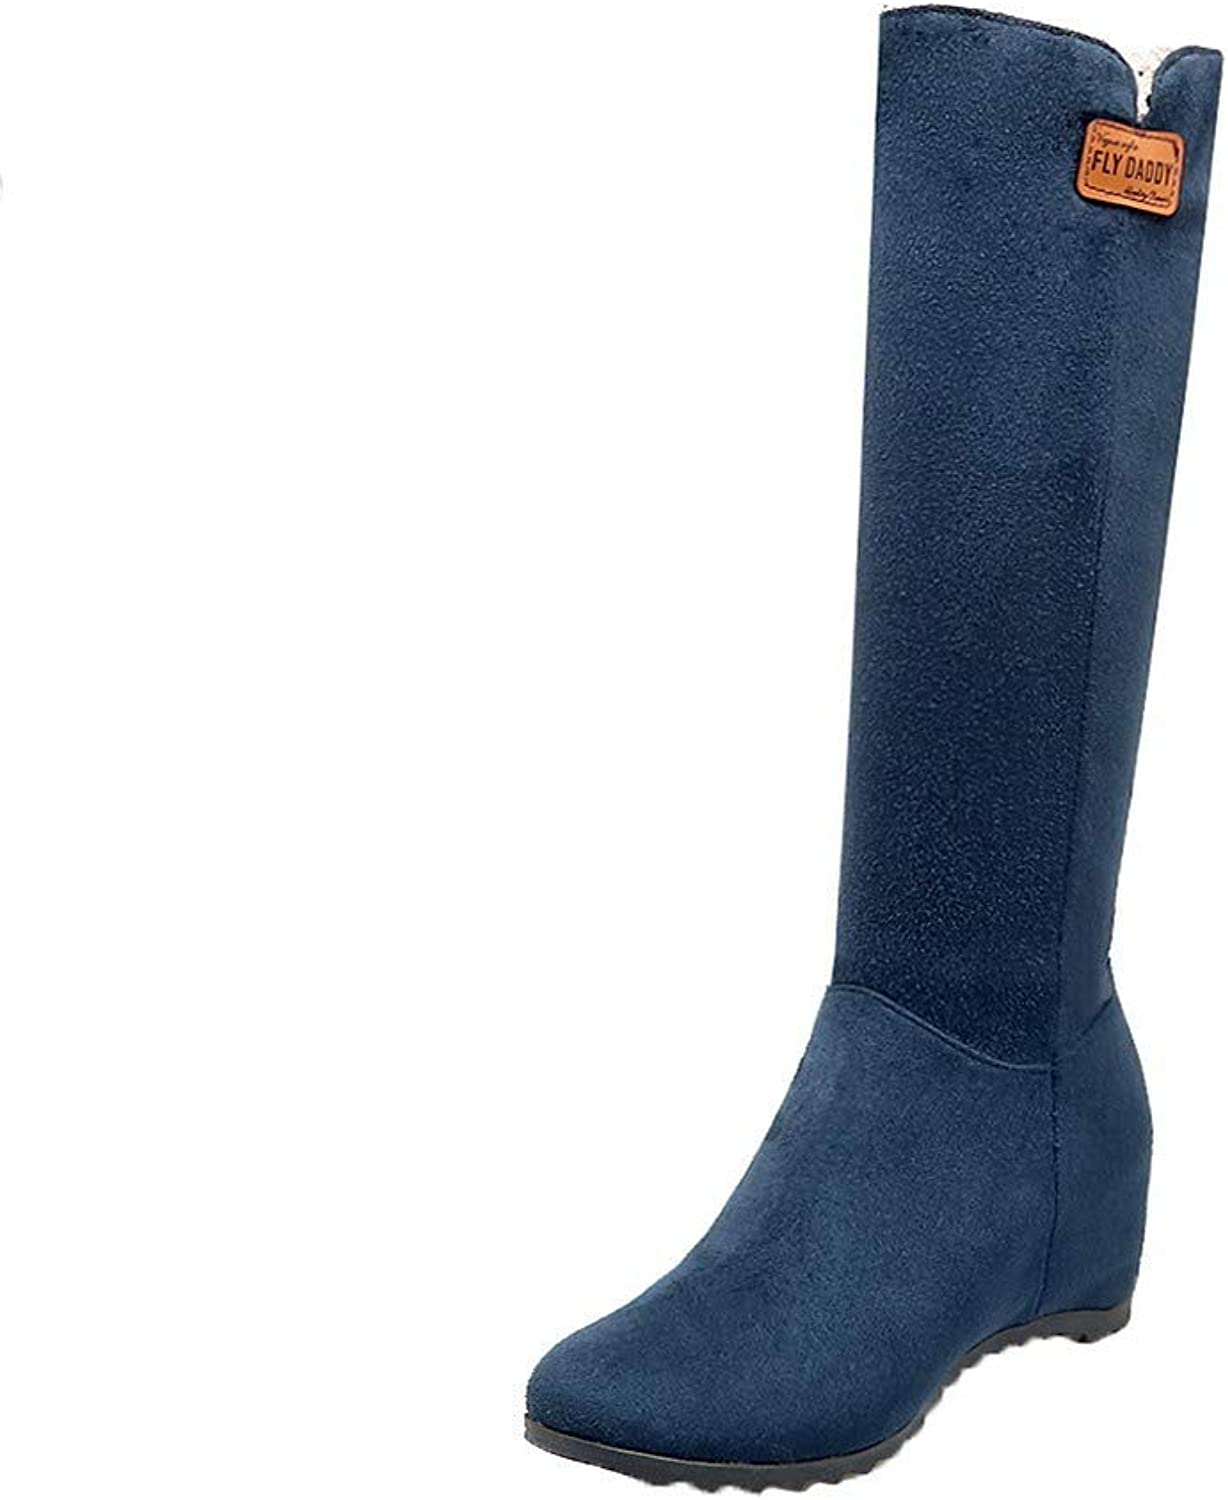 WeenFashion Women's Pull-On Round-Toe Kitten-Heels Frosted Mid-Calf Boots, AMGXX130109